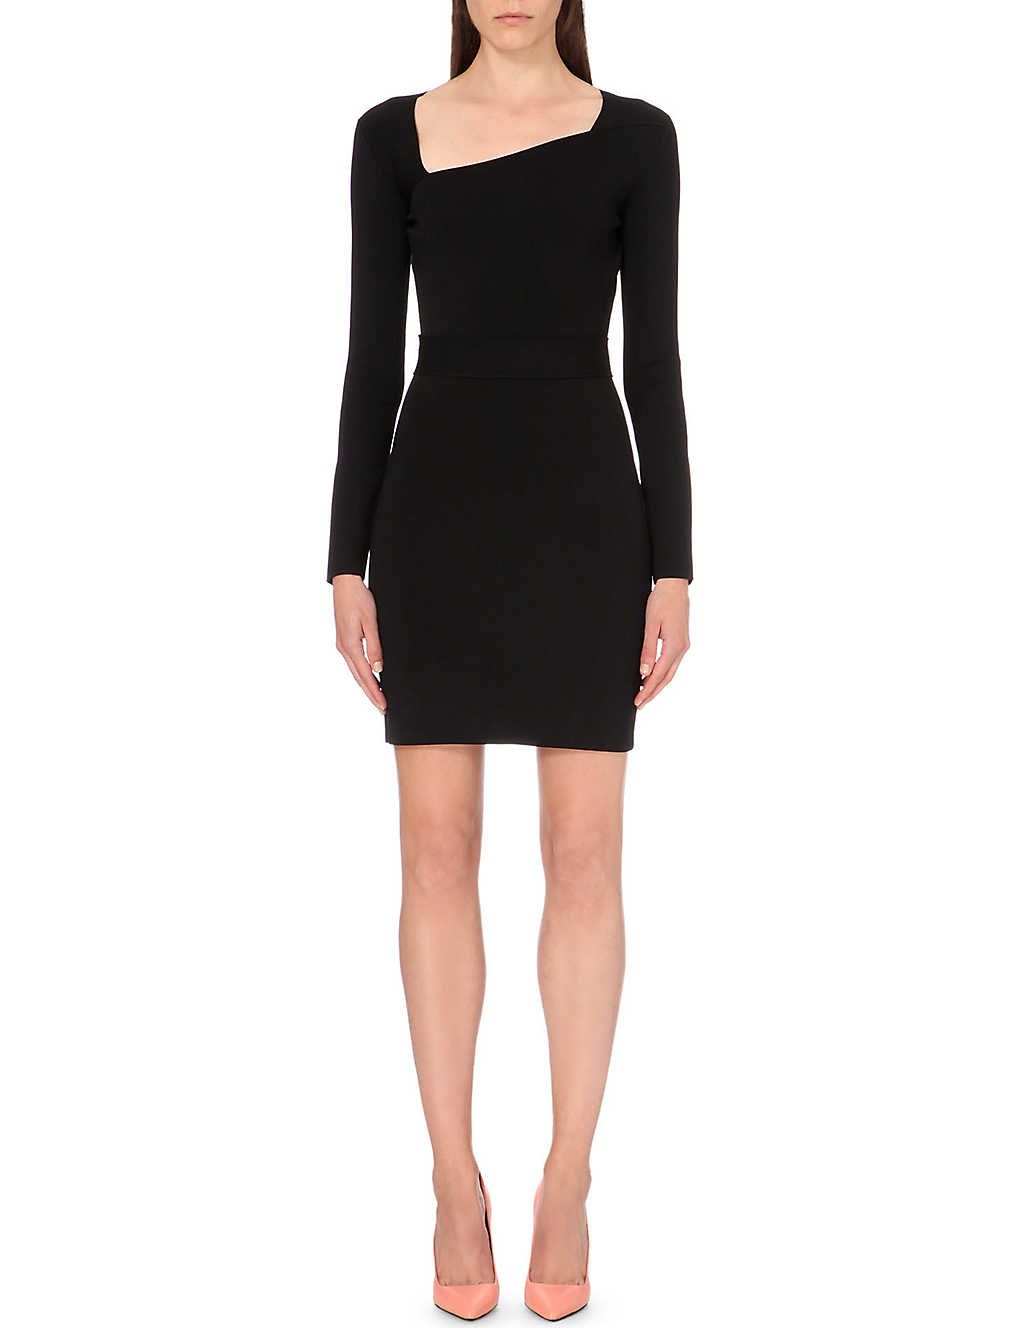 Roland Mouret Marsili Asymmetric Dress